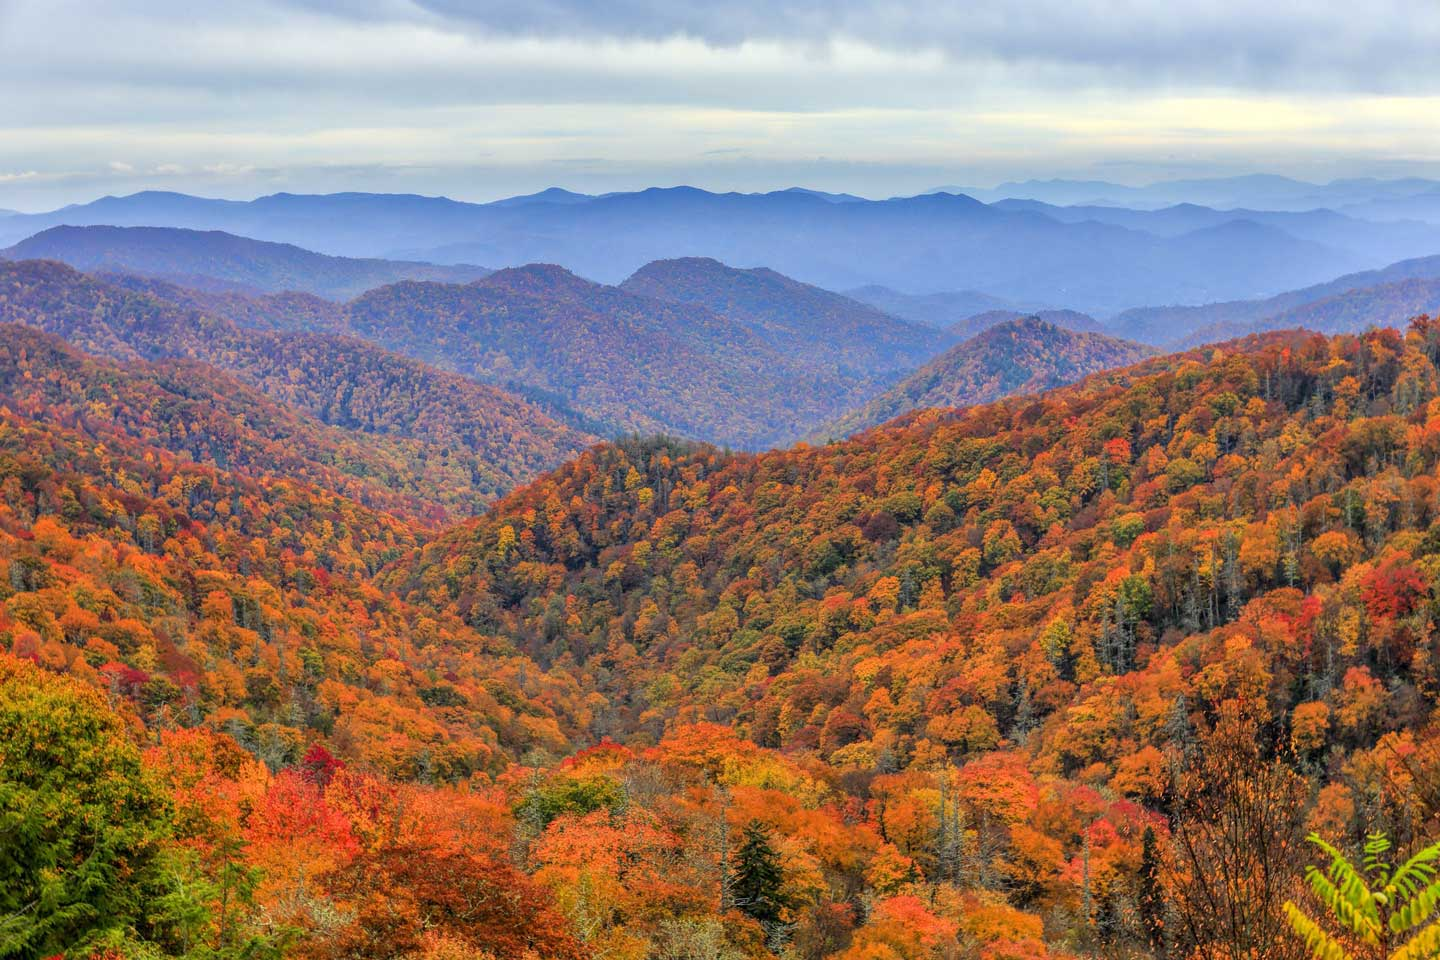 The Great Smoky Mountains with Fall colors